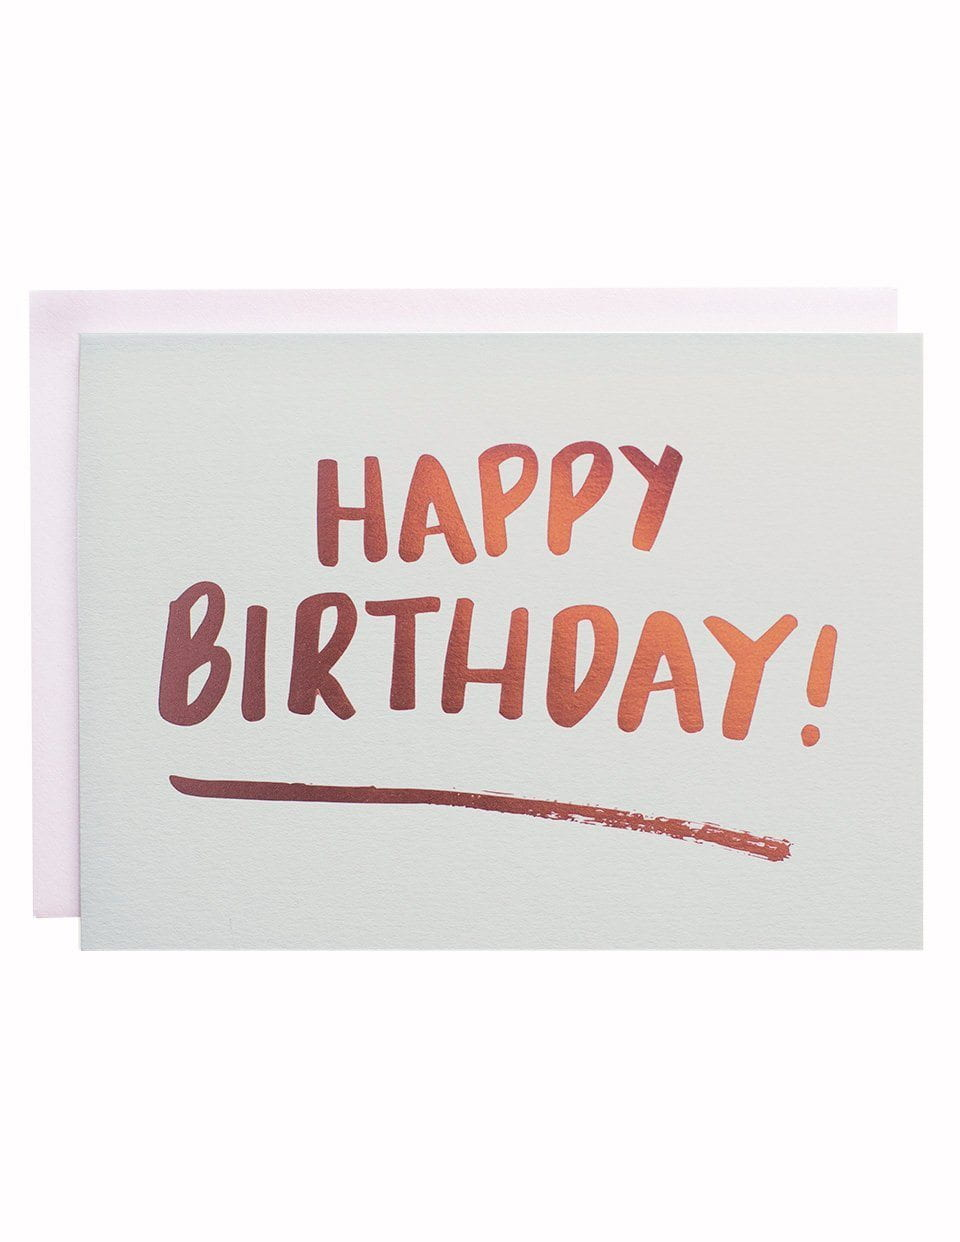 Happy Birthday Brush foiled greeting card